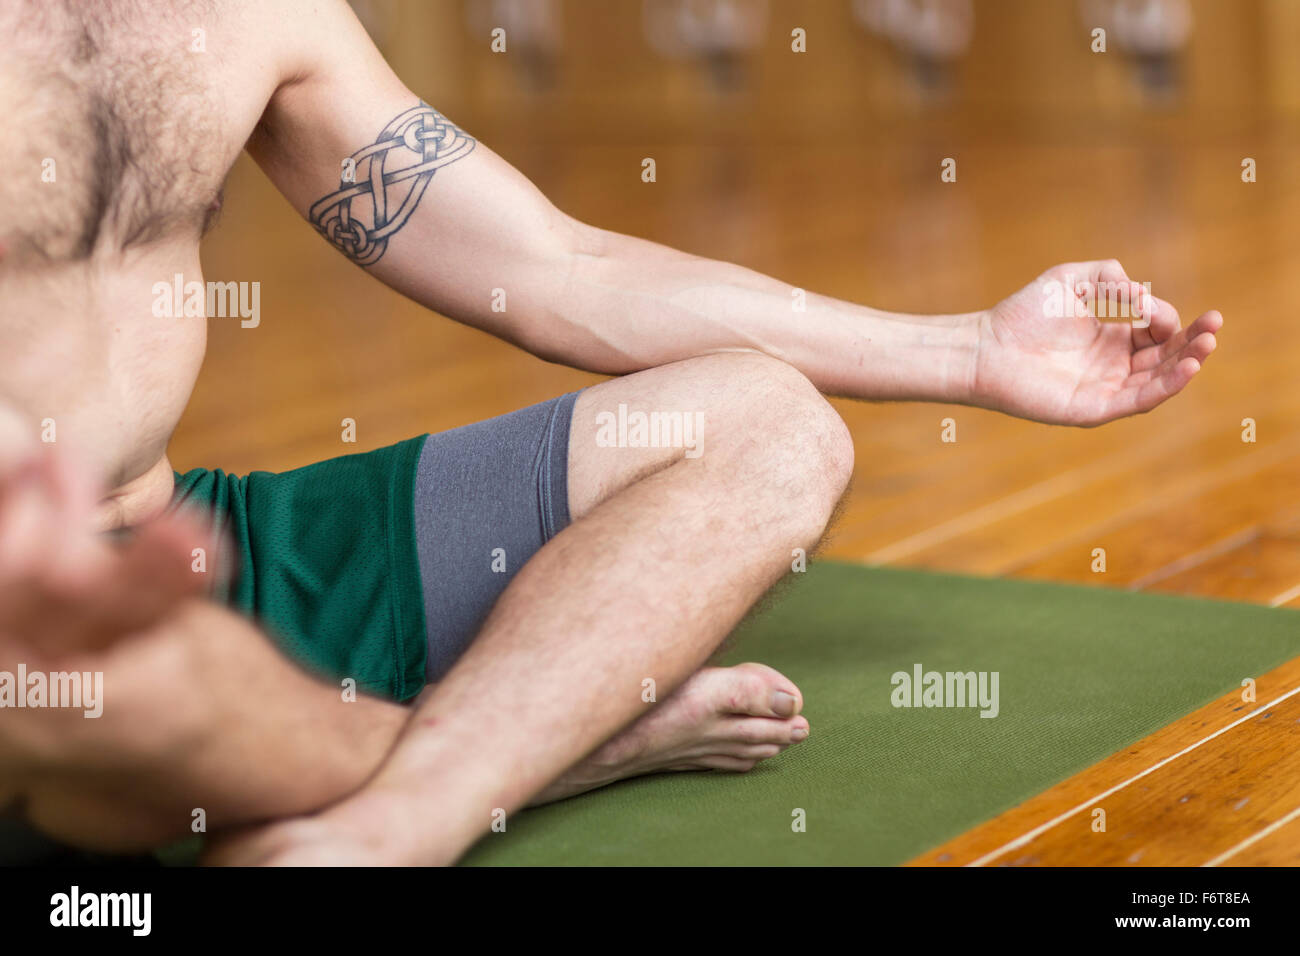 Man practicing yoga in studio Photo Stock